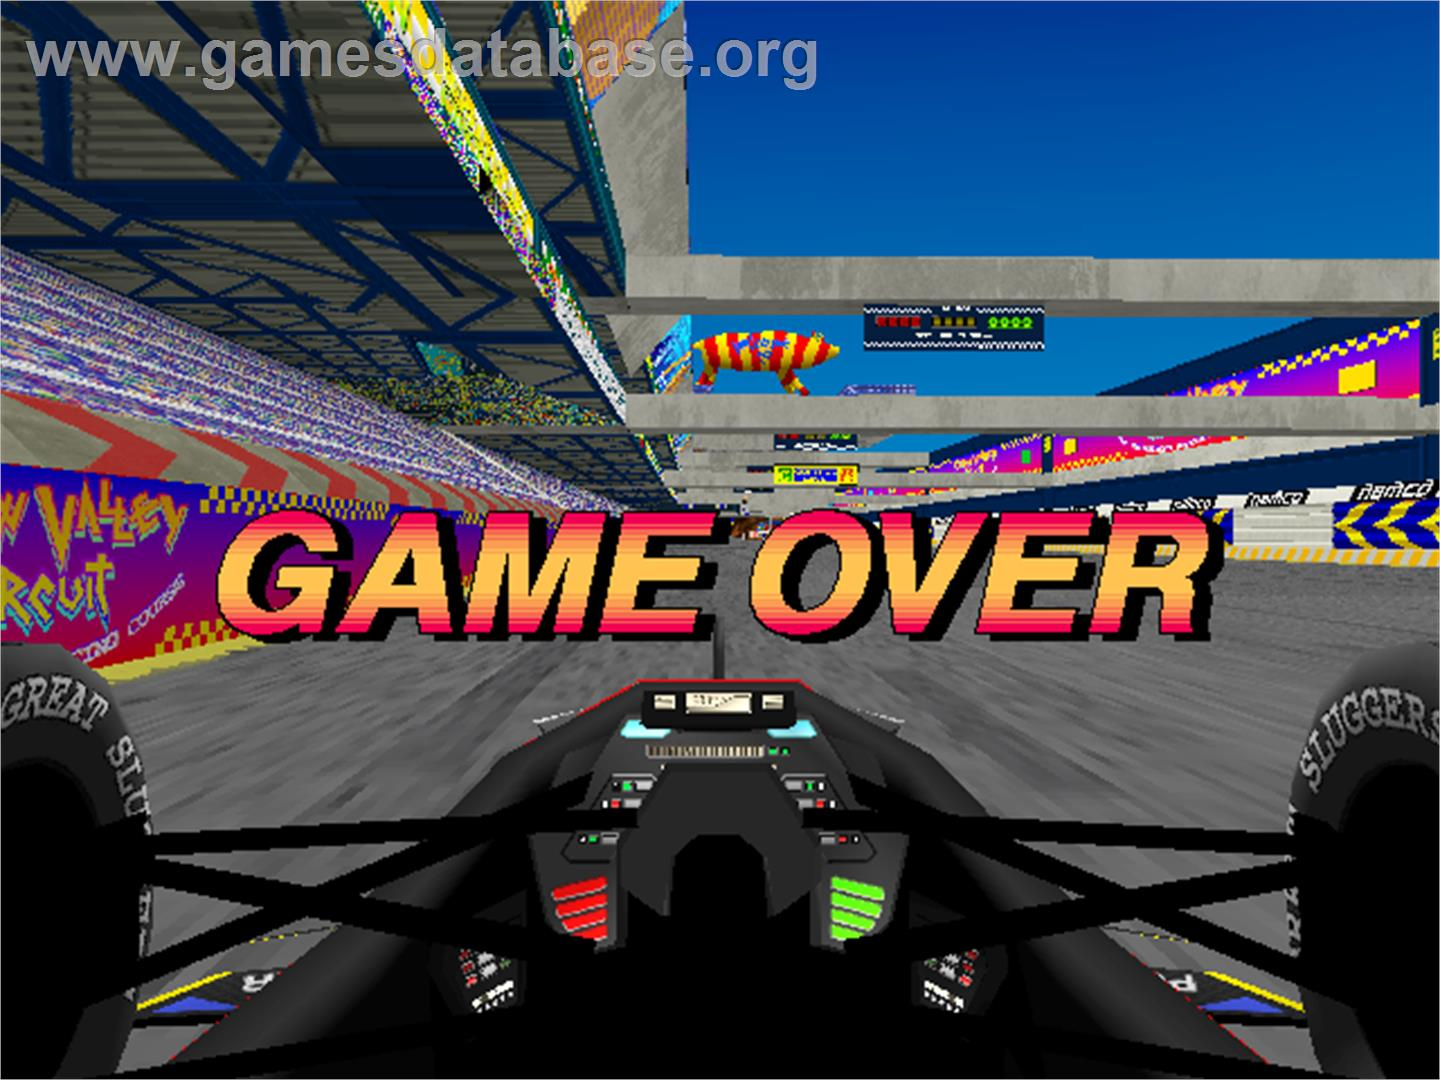 Ace Driver: Victory Lap - Arcade - Artwork - Game Over Screen